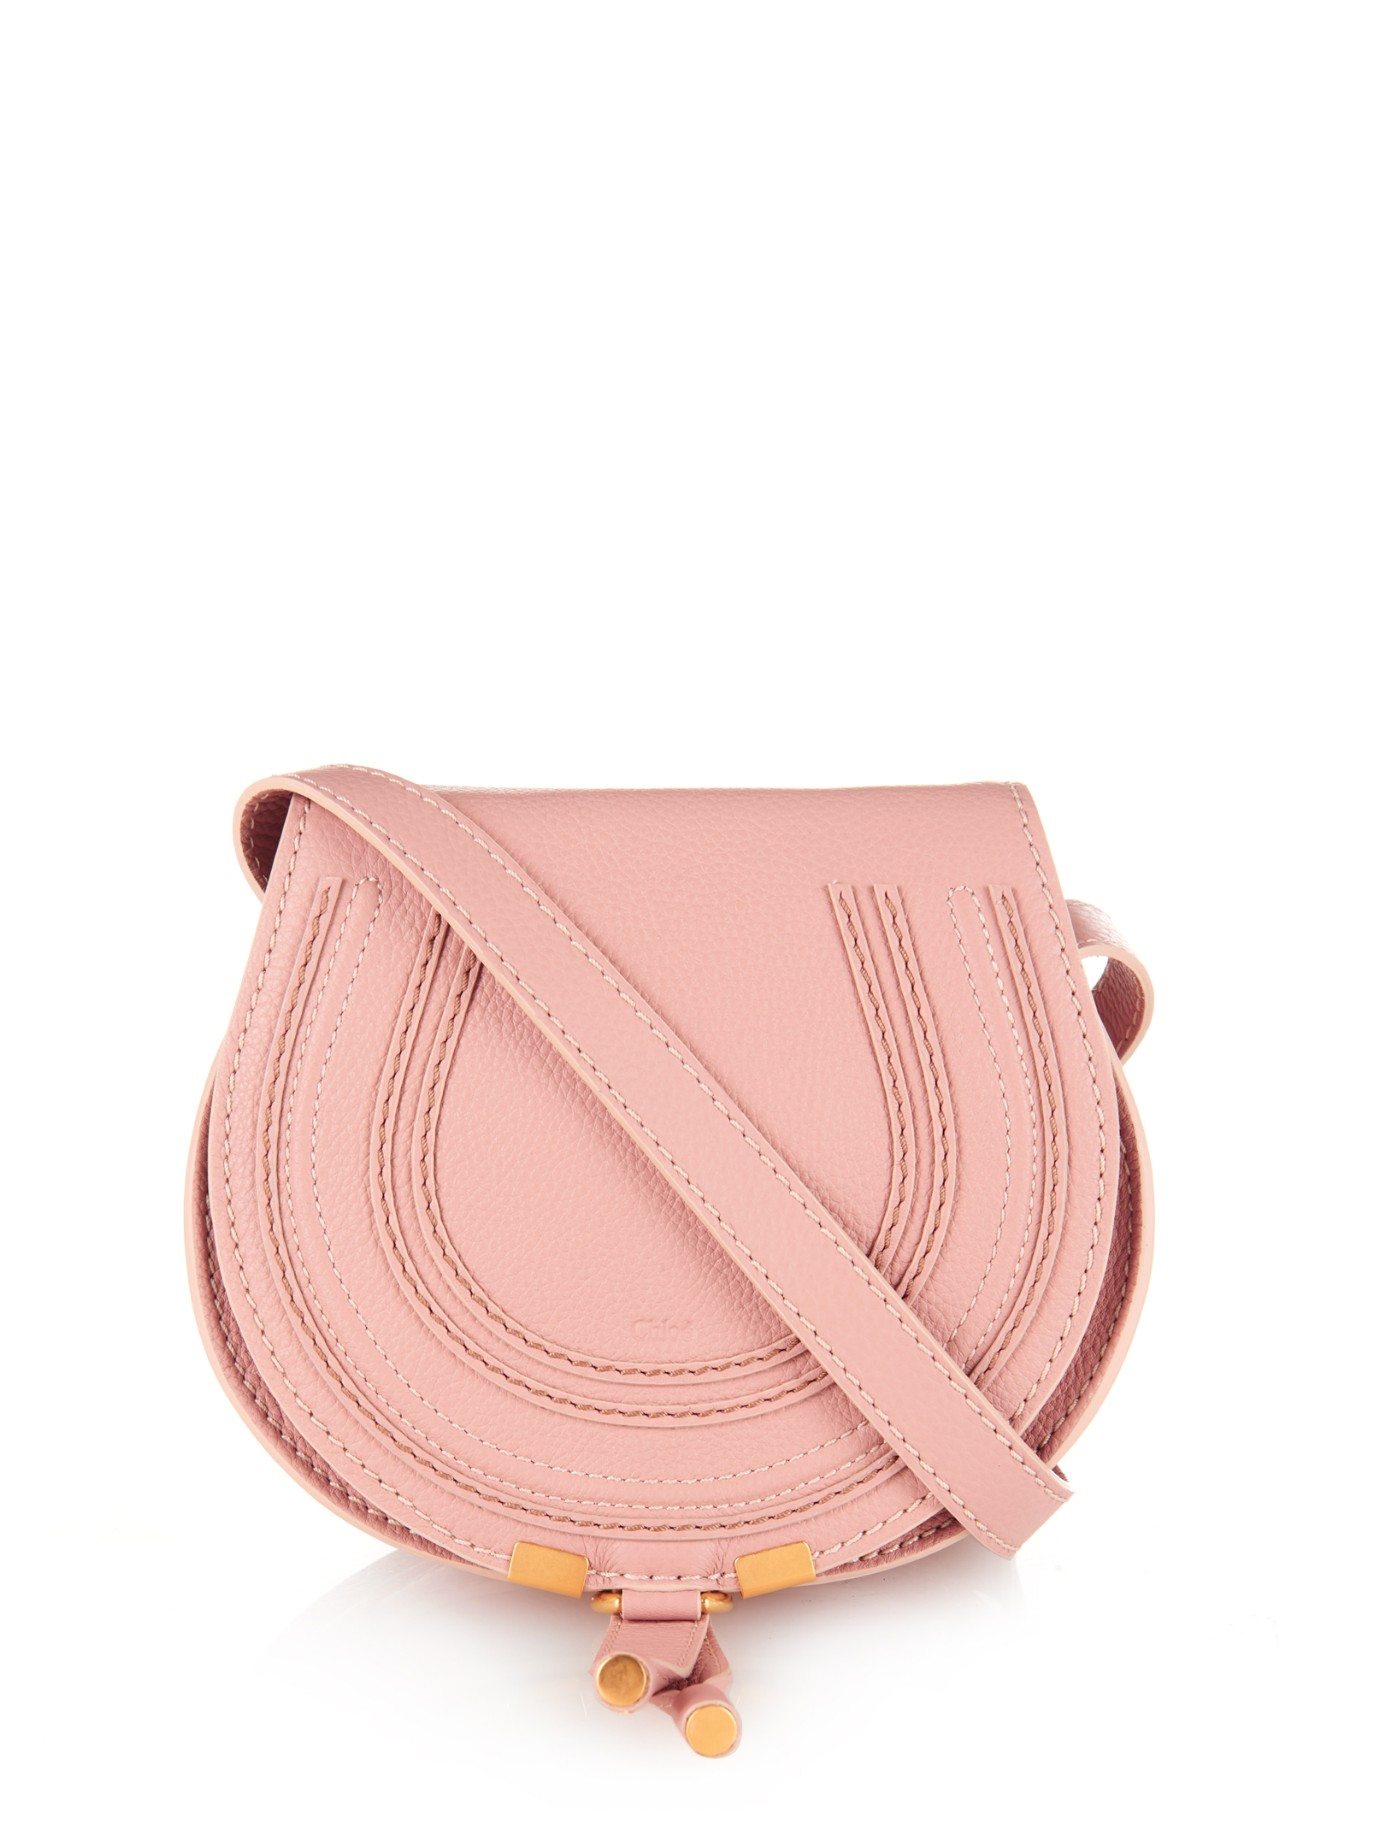 38a90339995 Chloé Marcie Mini Leather Cross-Body Bag in Pink - Lyst